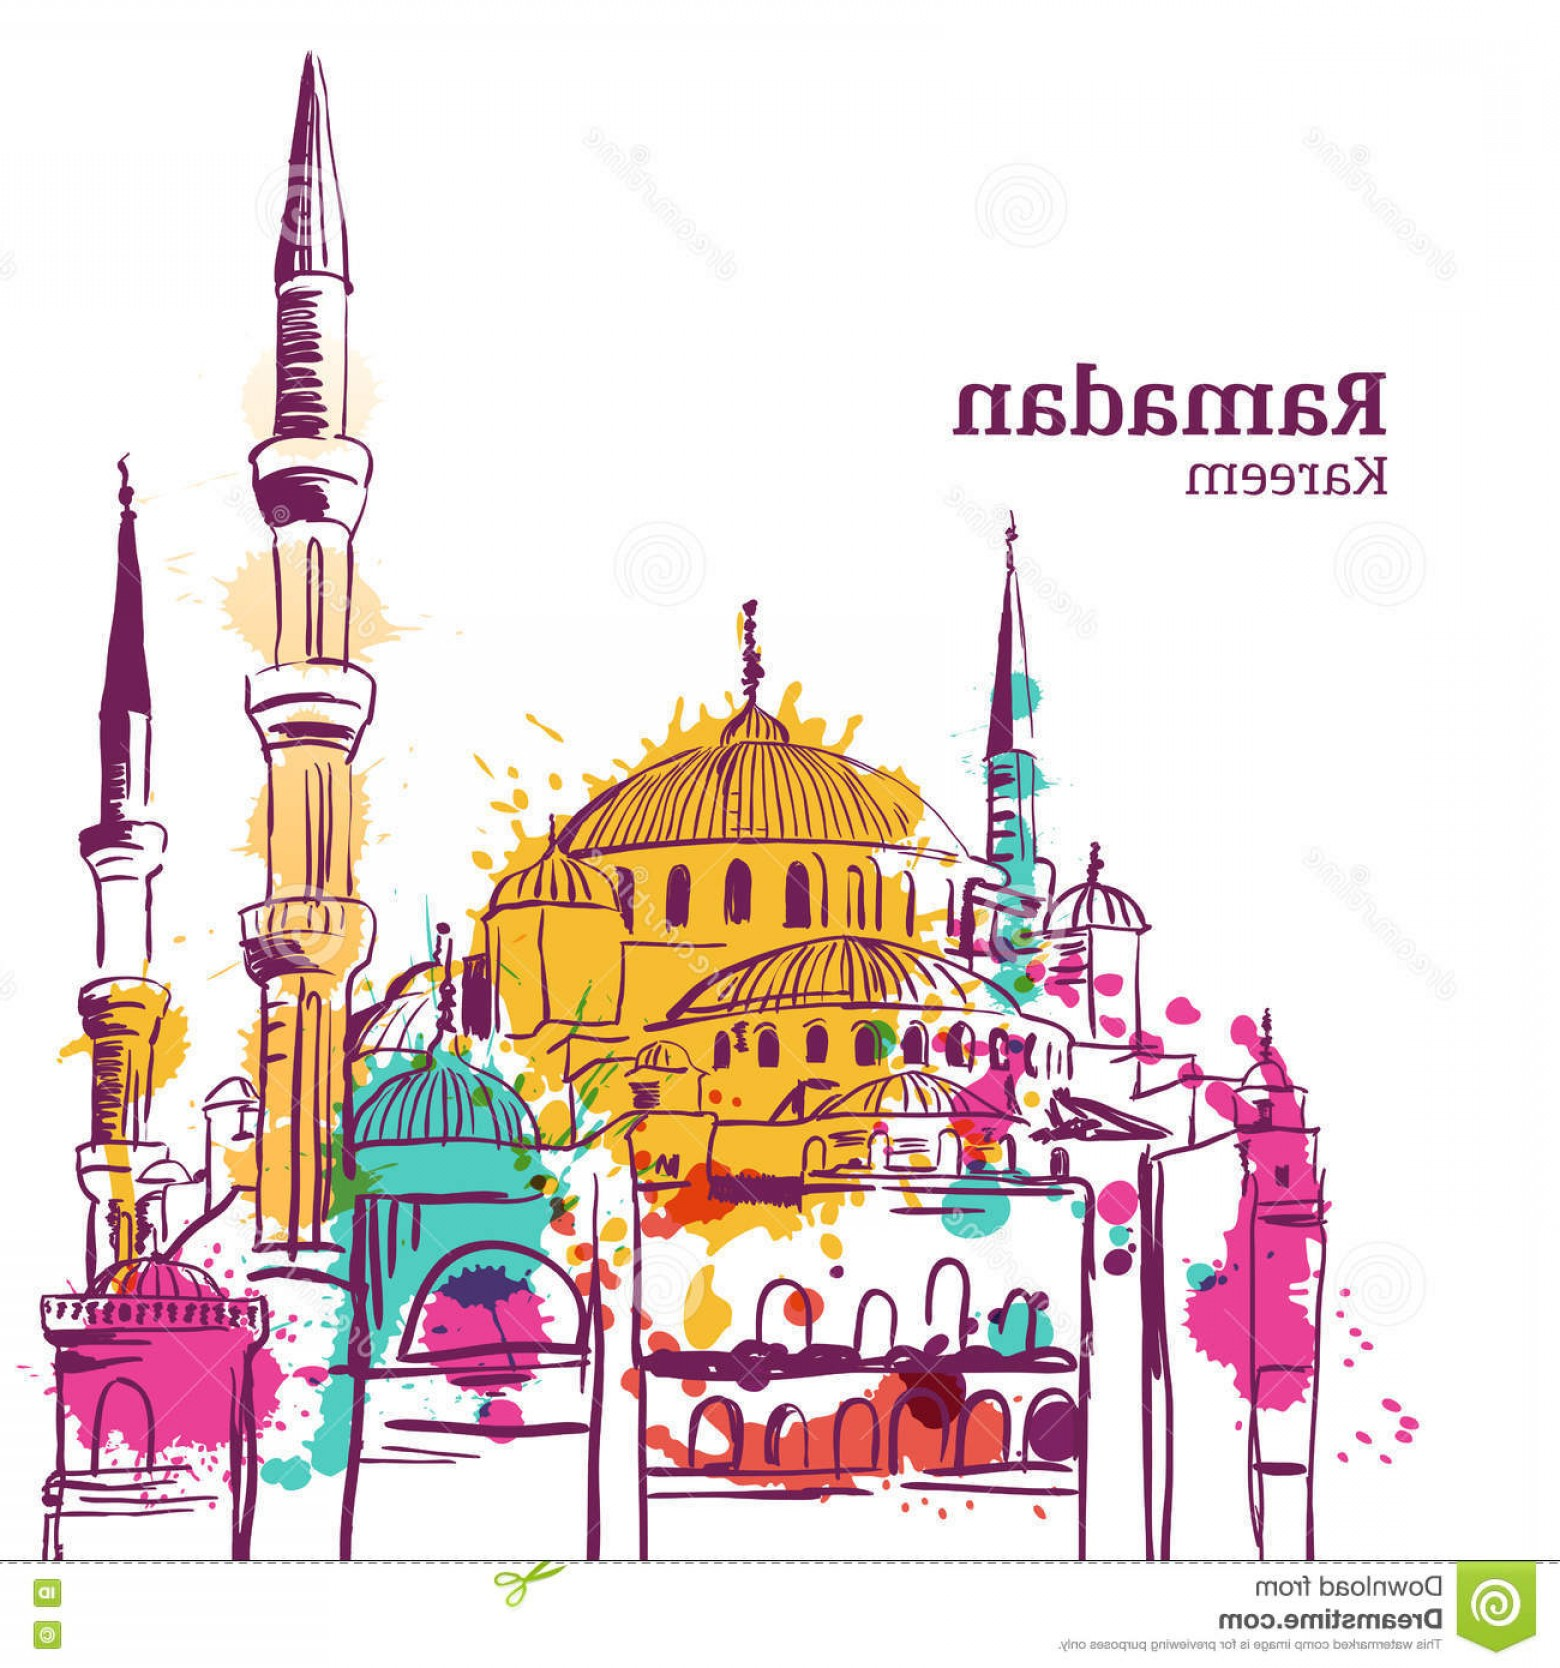 Mosque Vector Map: Stock Illustration Ramadan Kareem Holiday Design Watercolor Sketch Illustration Mosque Vector Background Greeting Card Image